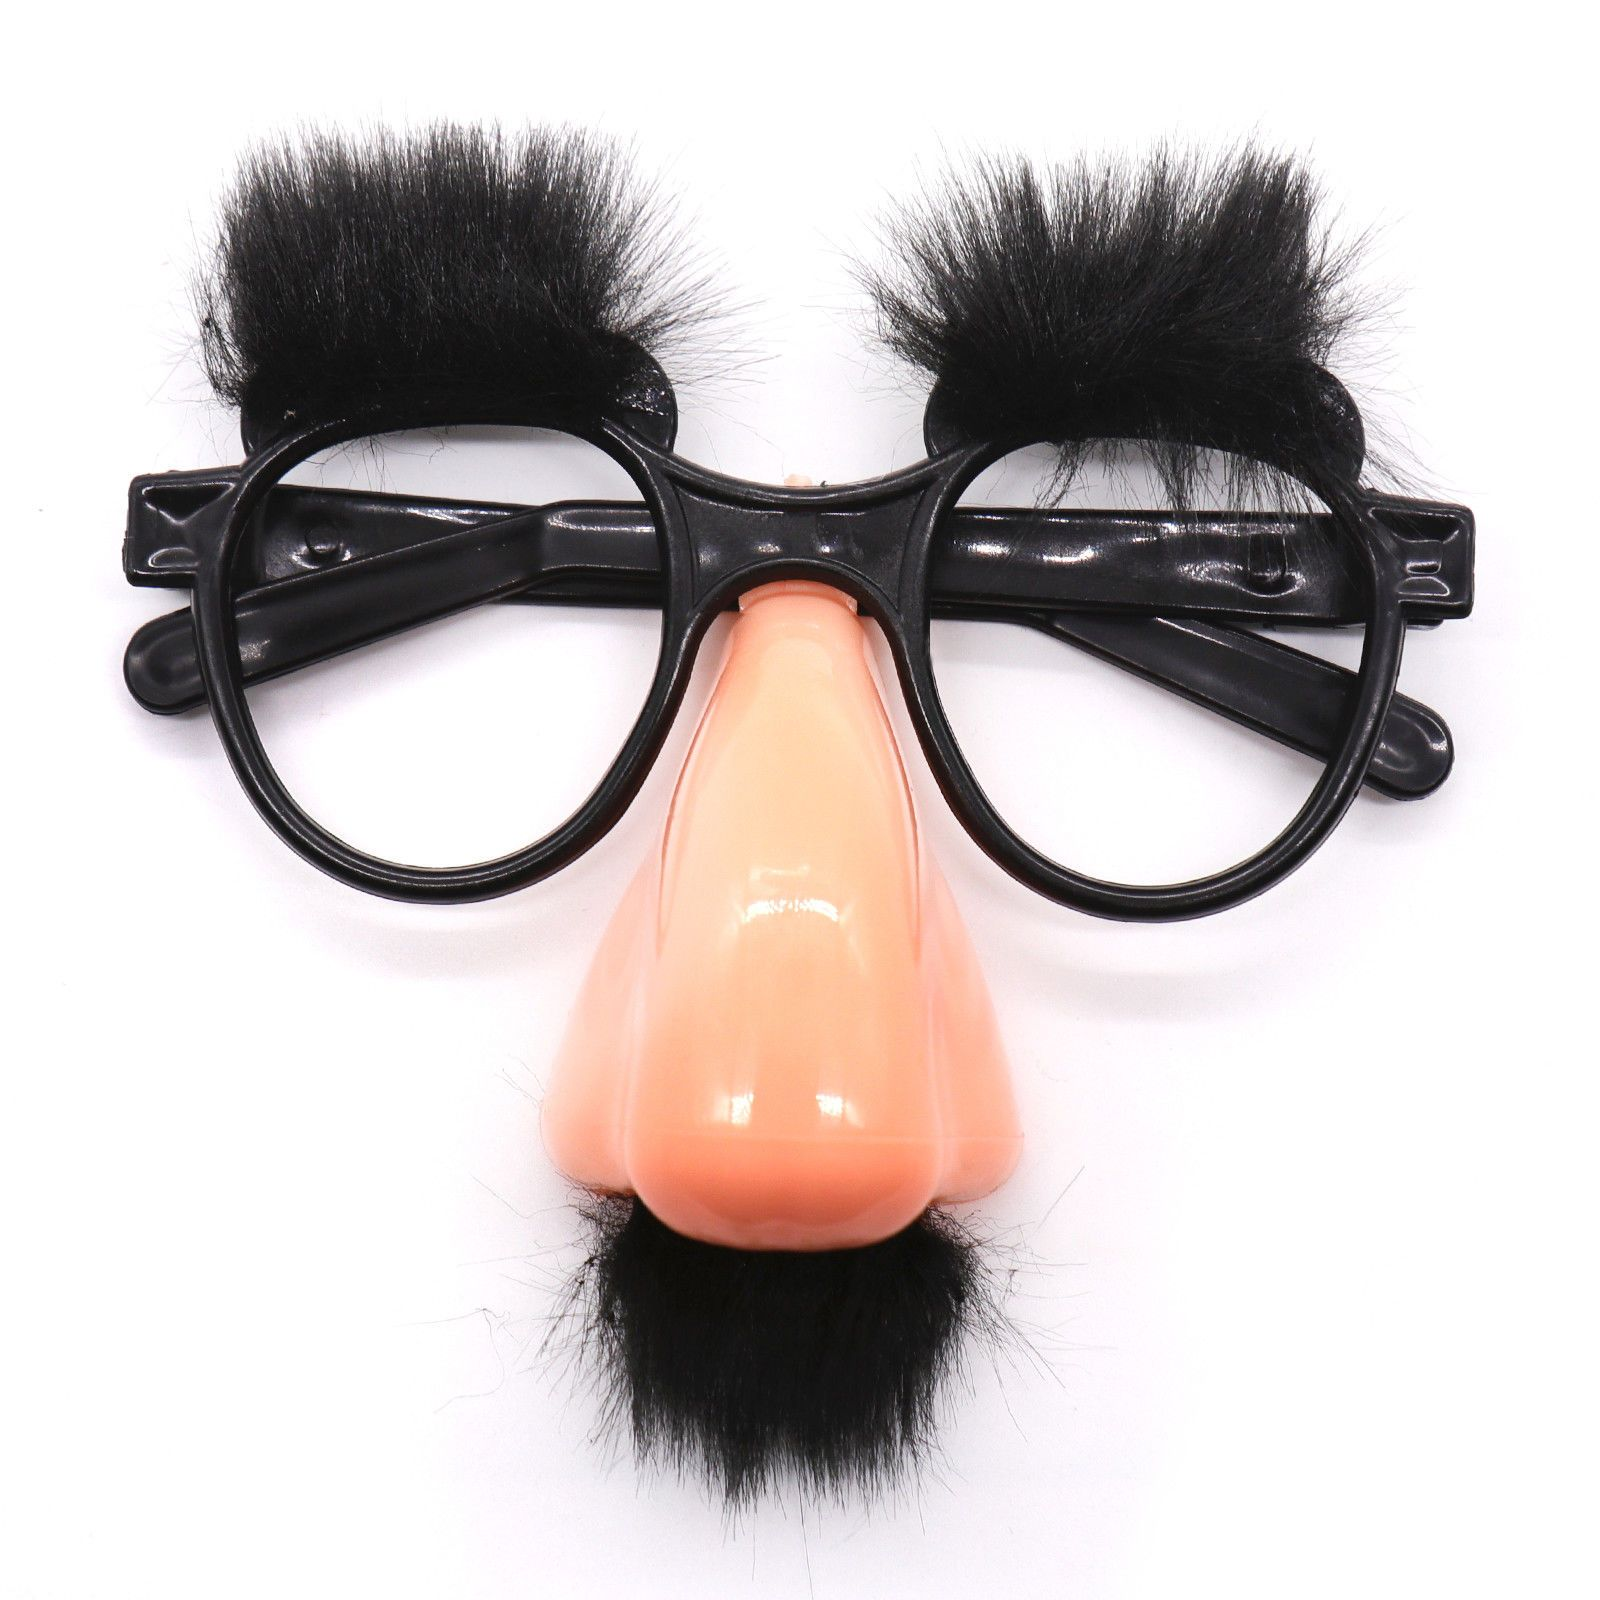 Novelty Big Nose Old Man Sunglasses Funny Party Photo Props Kids Adults